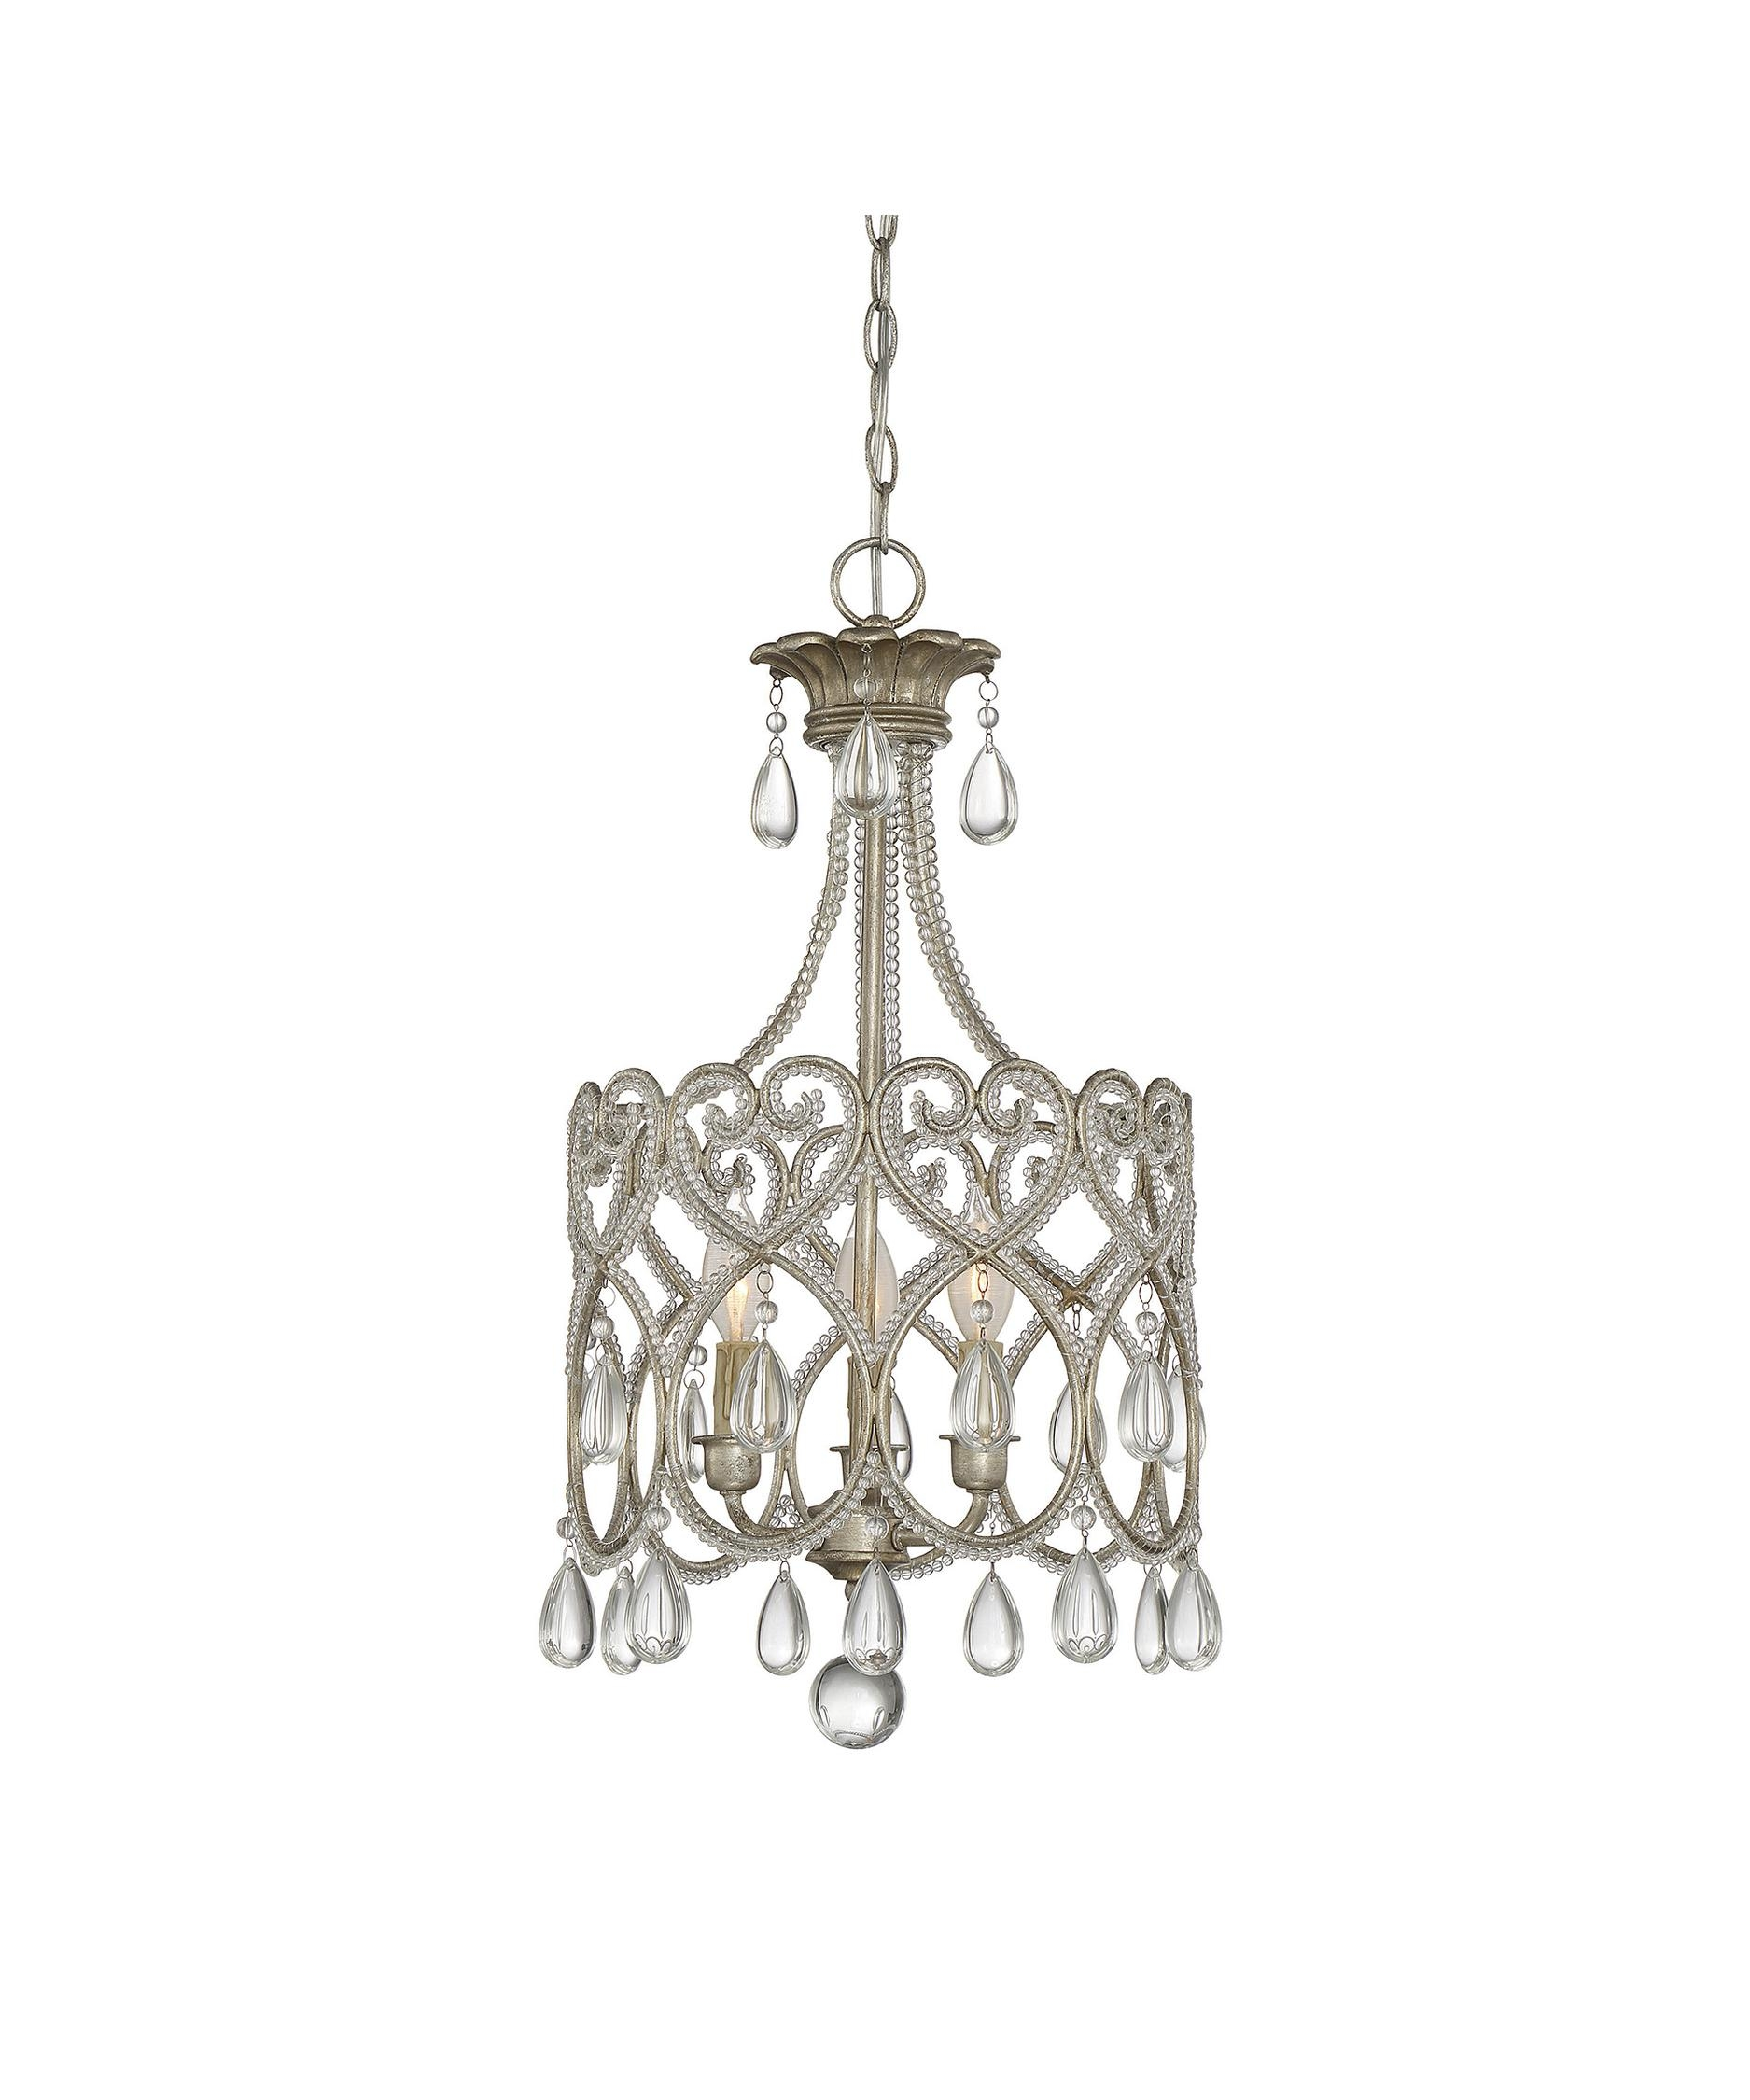 Savoy House 1 870 3 211 Mini Chandelier 13 Inch Wide 3 Light Mini Inside Savoy House Chandeliers (Image 20 of 25)